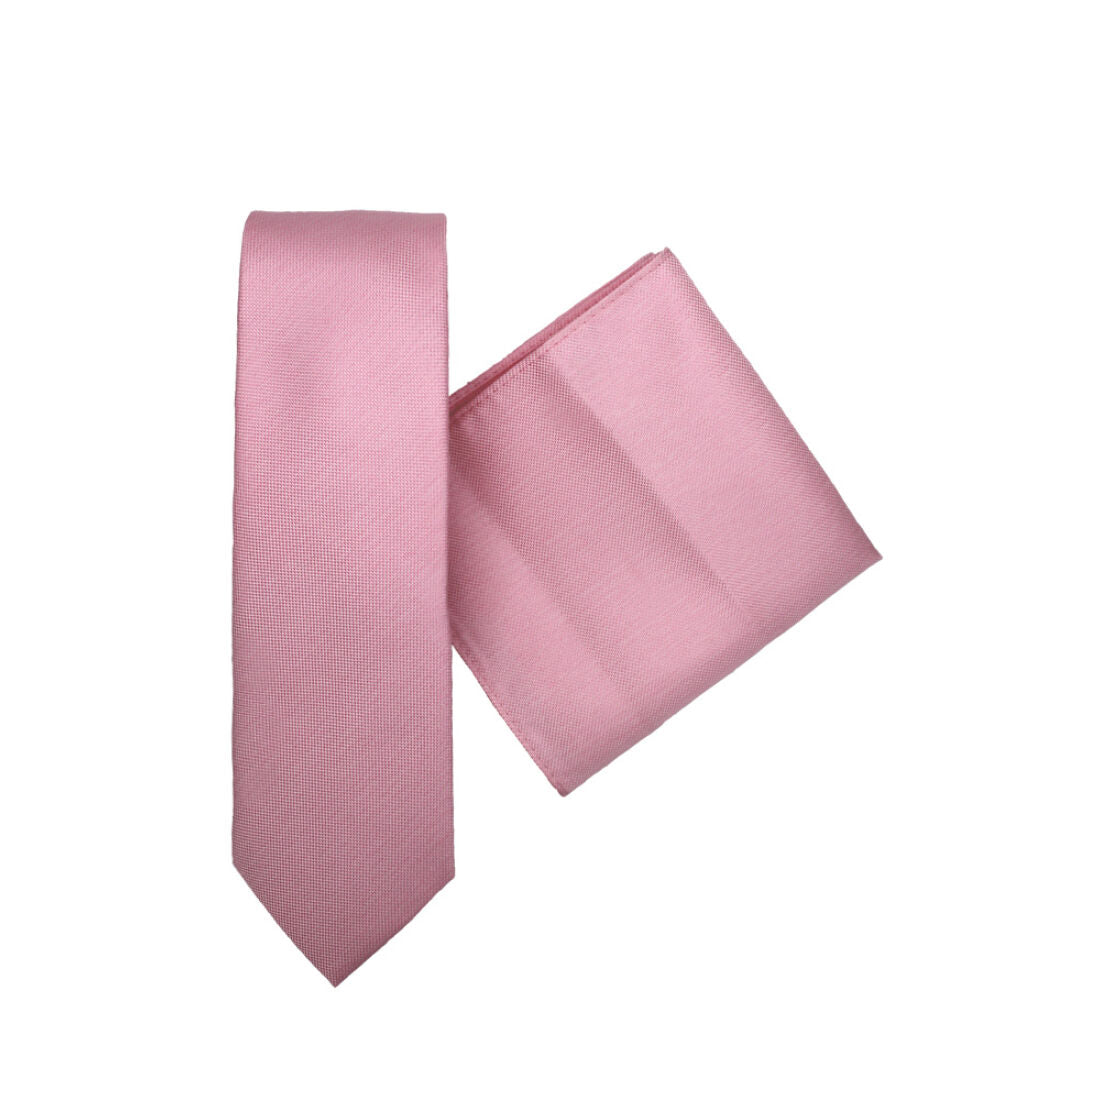 L.A. SMITH :  Plain Pink Deco Polly & Handkerchief Set